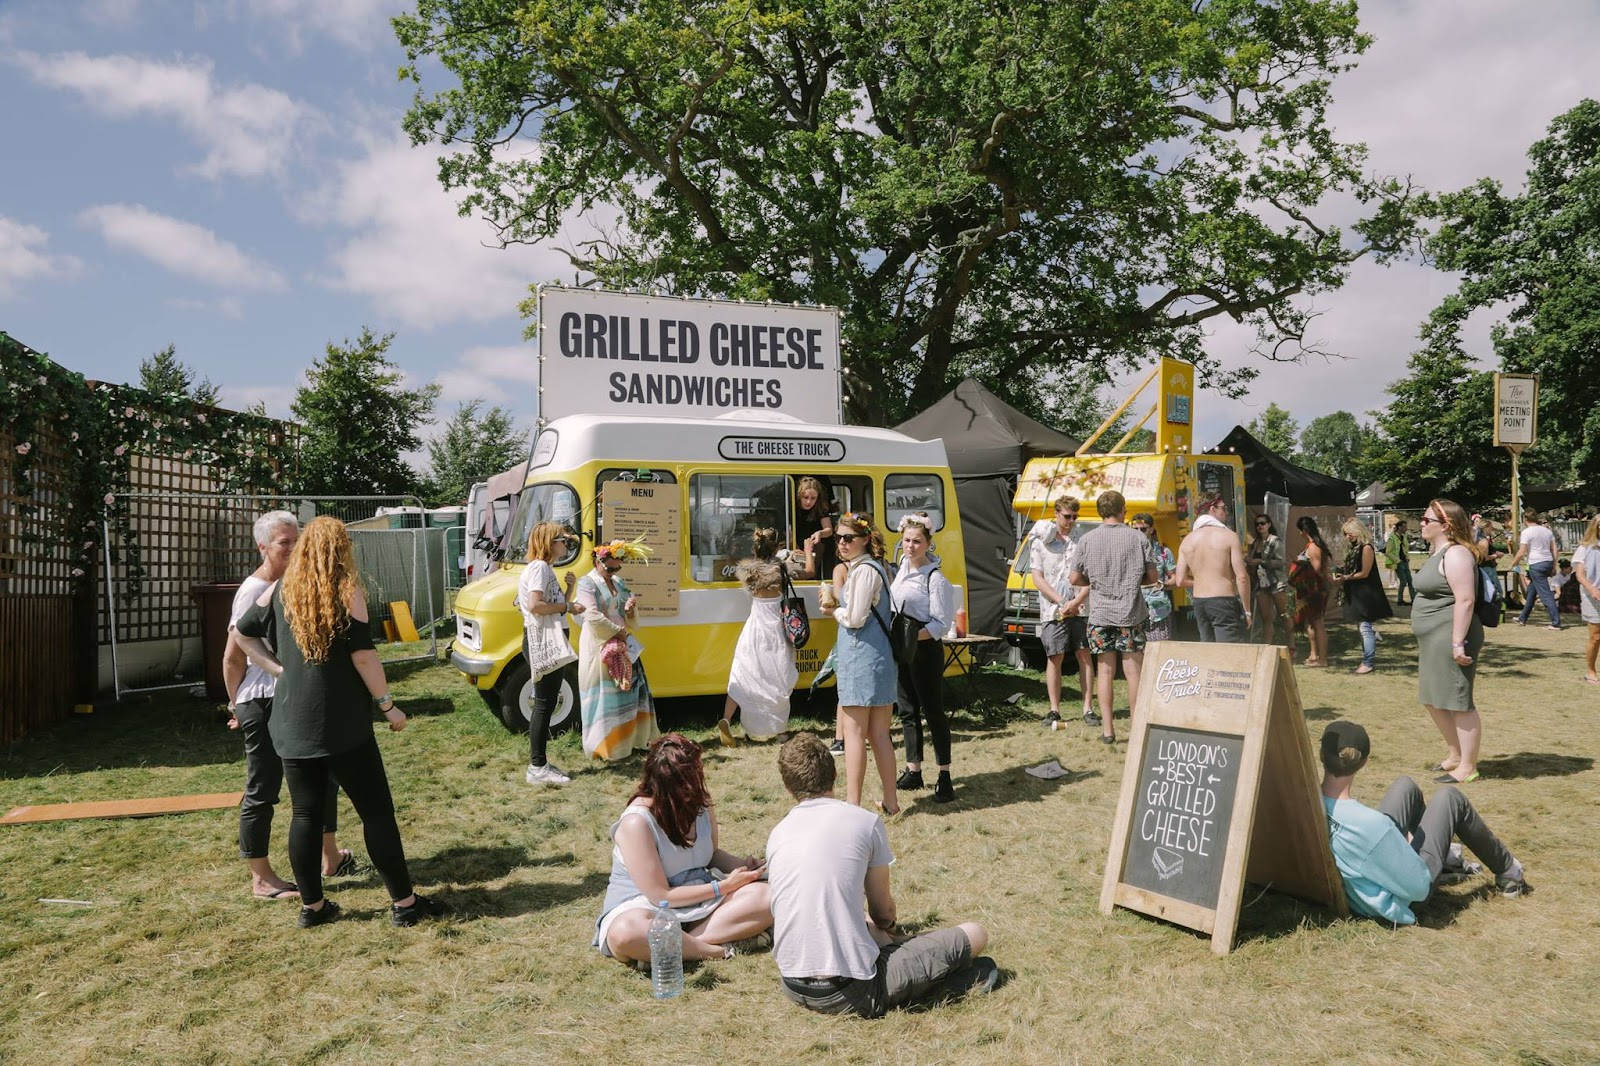 london's top food trucks worth chasing London's Top Food Trucks Worth Chasing P fWU9Tylg5F 72NVkpA rEJ WORcmtTp6NzbyhLwN3X u VG9Y7RfZic00Wc9DpzTeeNmg3Wi5DAMY5E90GN4TBwJImkFvB0Qdes5NyjRk3aaeLRomwXZP97PfNgfjgqg